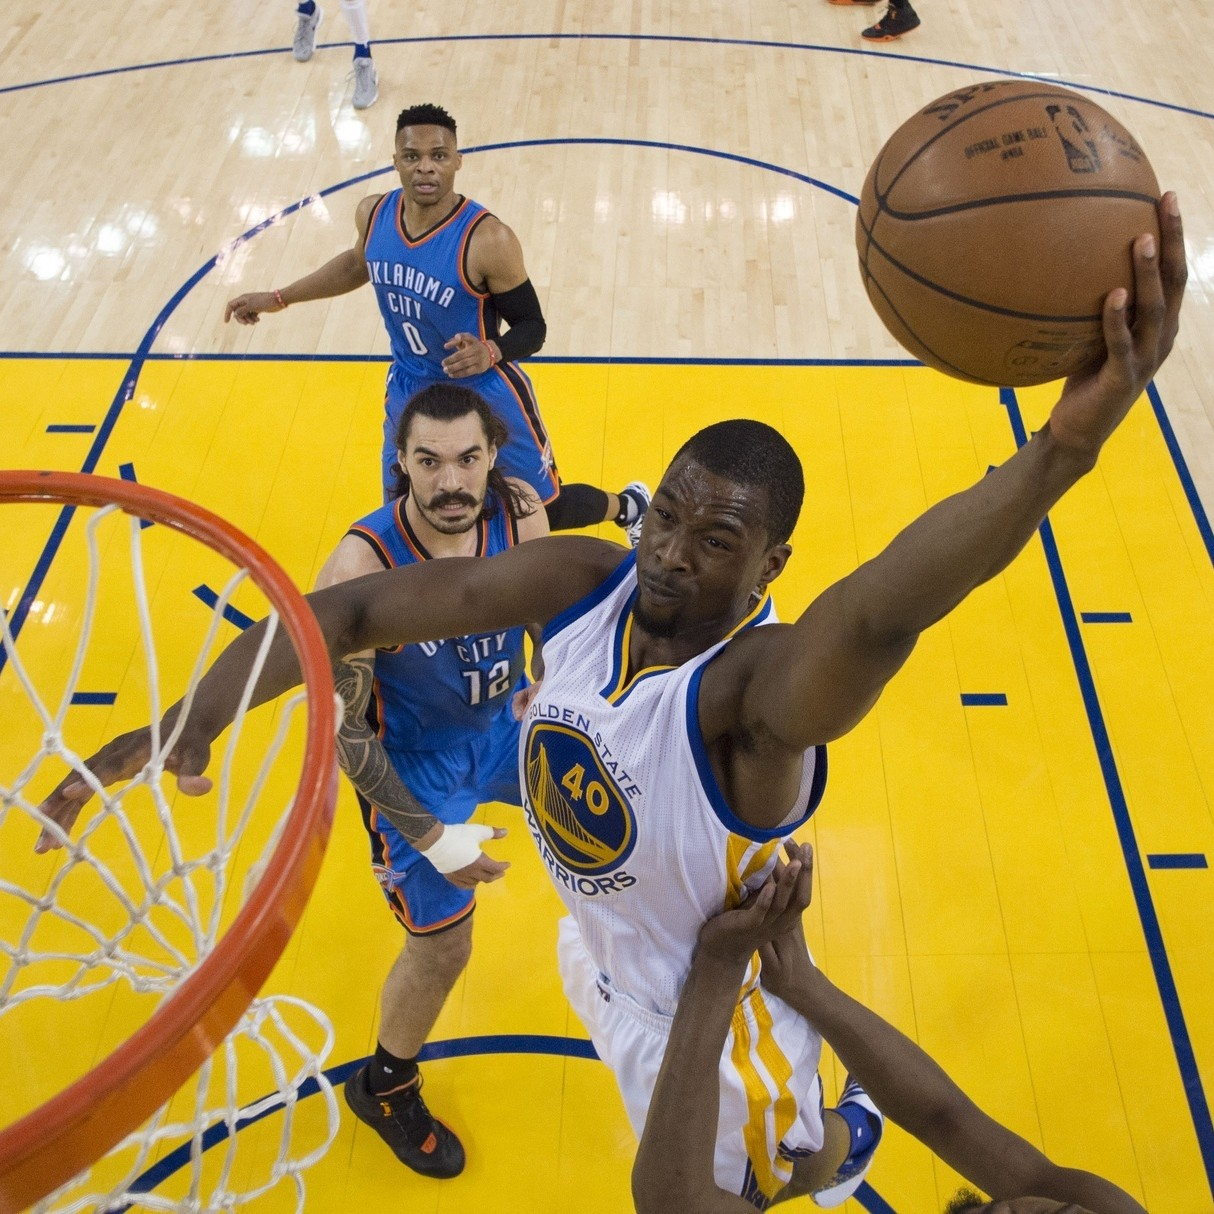 Harrison-barnes-is-good-and-lucky-not-necessarily-in-that-order-1463720463.jpg?crop=0